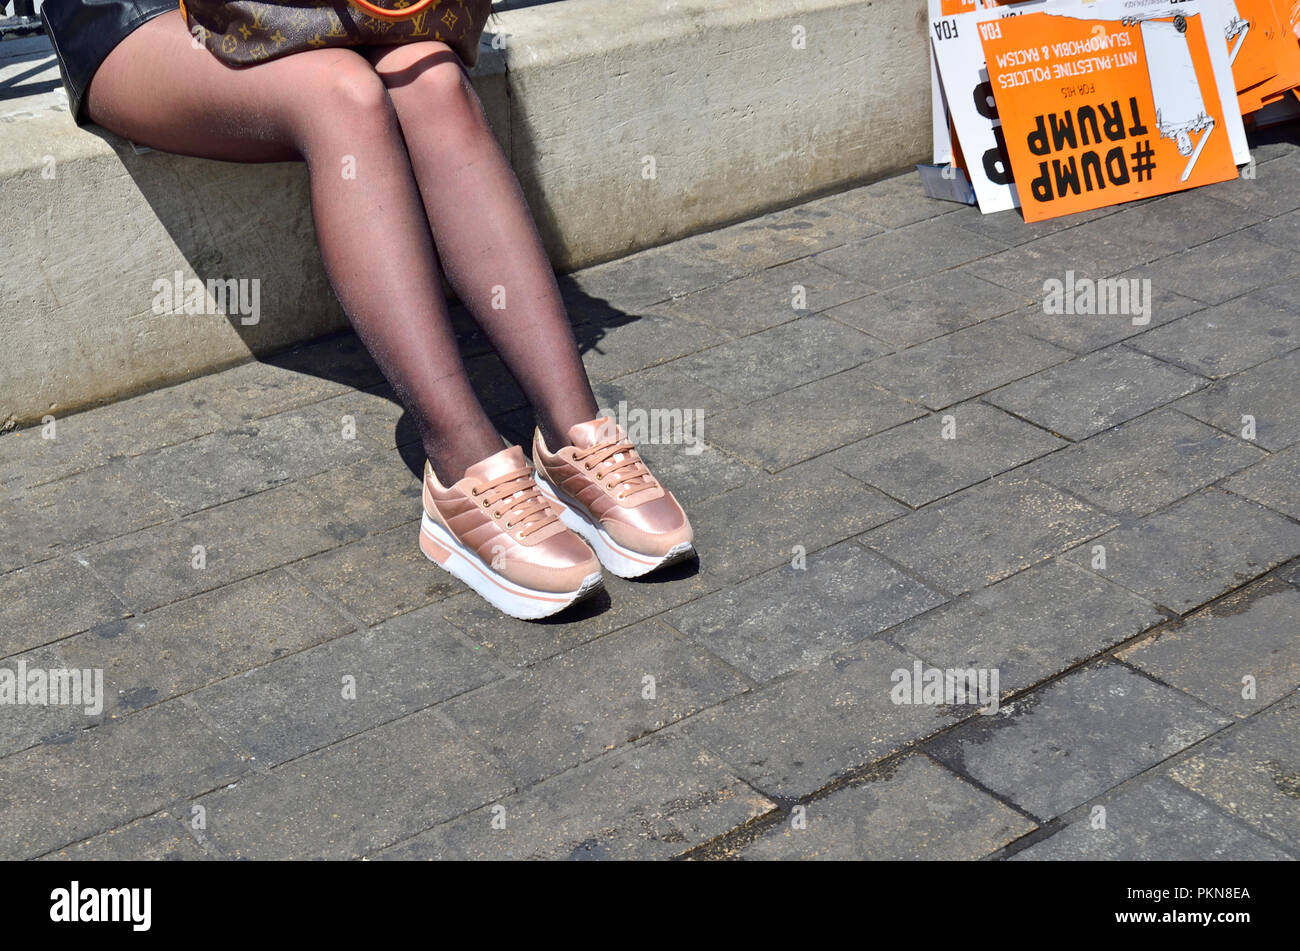 Girl wearing copper training shoes and tights during an anti_trump rally, London, England, UK. 2018 - Stock Image